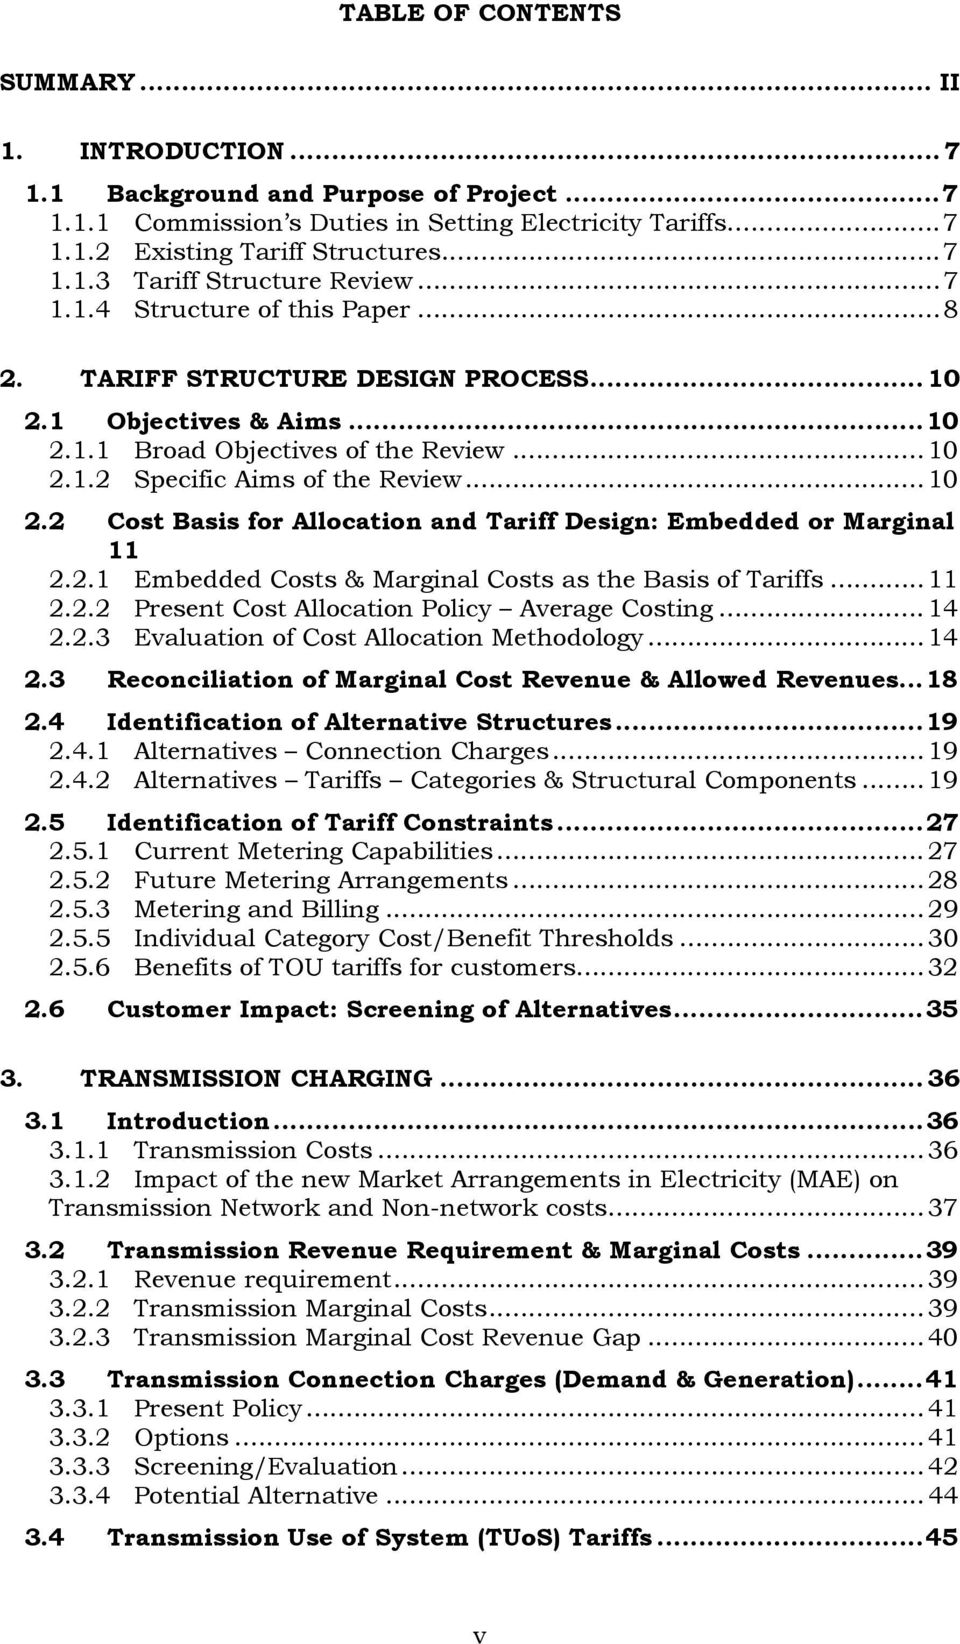 2.1 Embedded Costs & Marginal Costs as the Basis of Tariffs...11 2.2.2 Present Cost Allocation Policy Average Costing...14 2.2.3 Evaluation of Cost Allocation Methodology...14 2.3 Reconciliation of Marginal Cost Revenue & Allowed Revenues.